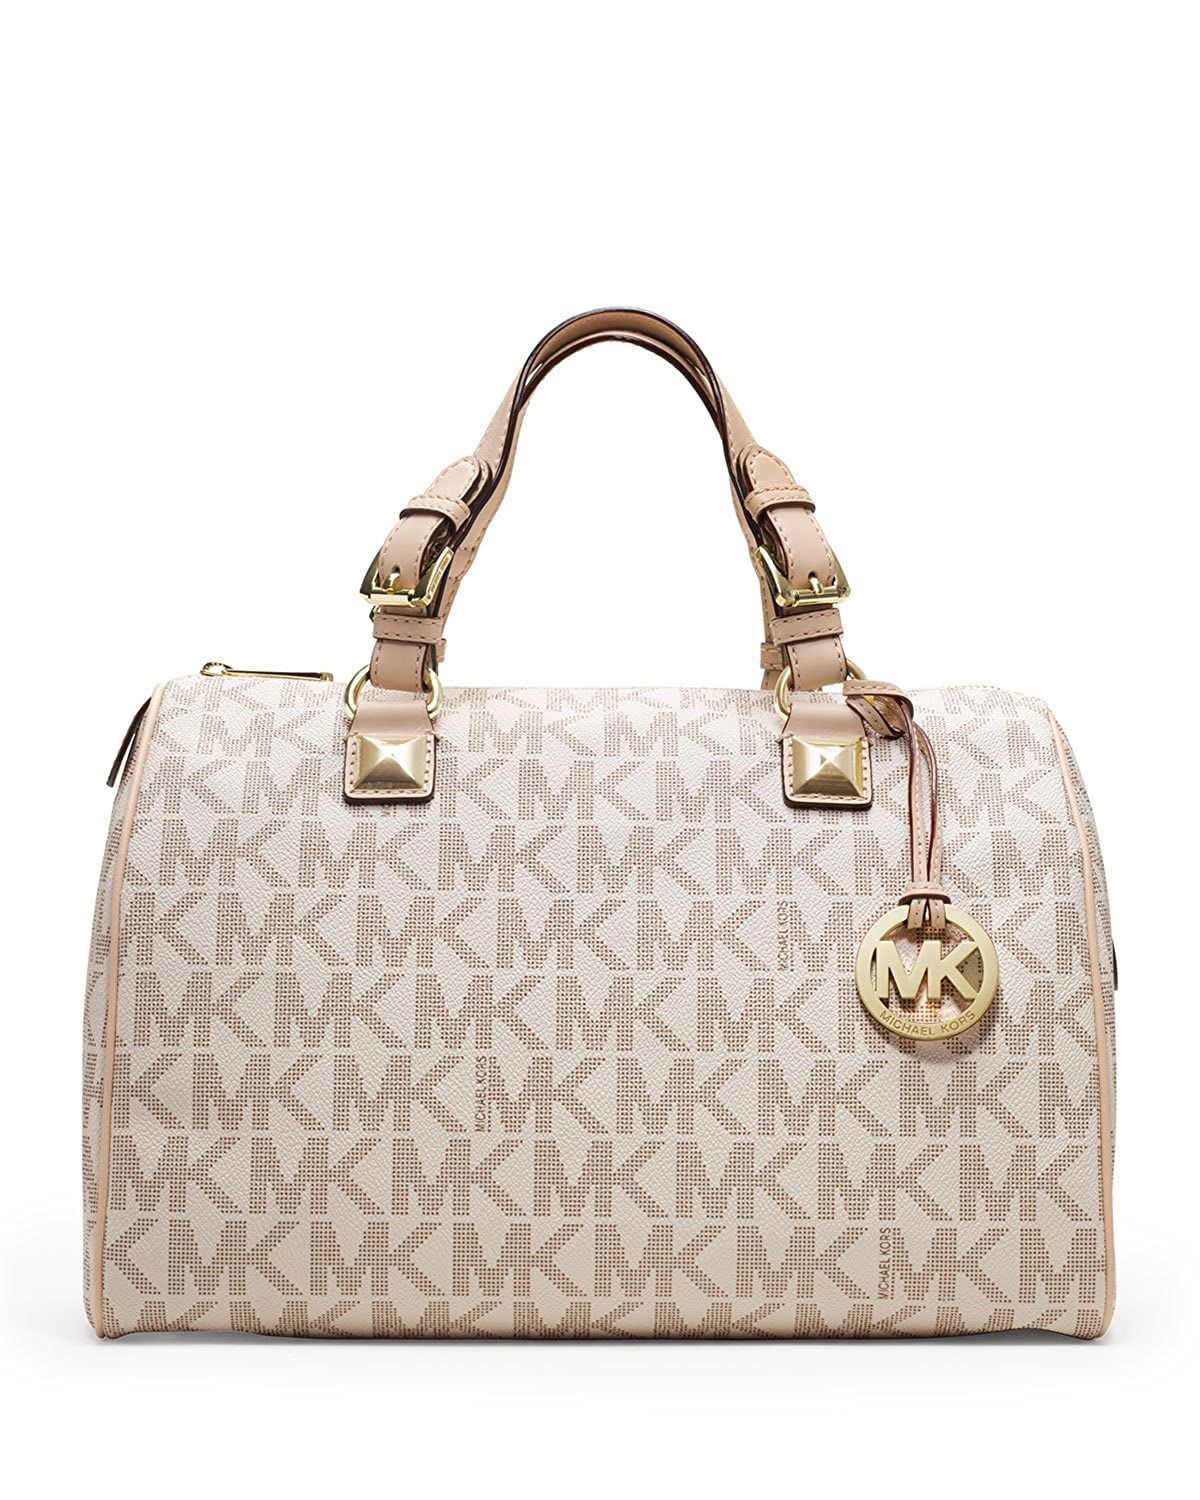 783071b67b70 Amazon.com  Michael Kors Womens Grayson Large Logo Satchel Vanilla Handbag   Shoes